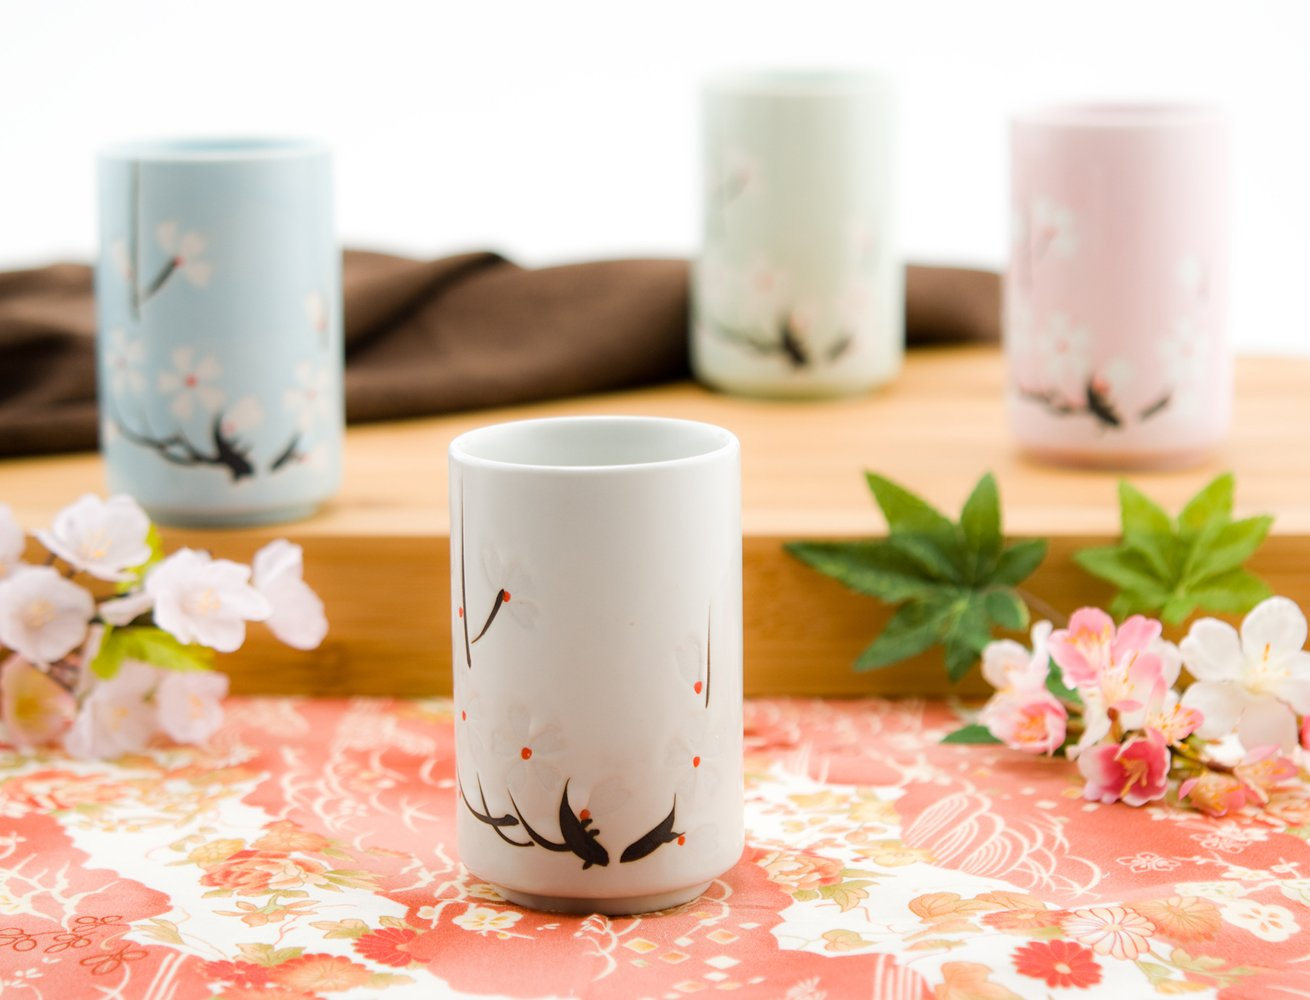 Japanese Tea Cups Quality Ceramic Set of 4 Cherry Blossom Sakura Design Assorted Colors Four Season Decorative Sushi Teacups Gift Pack